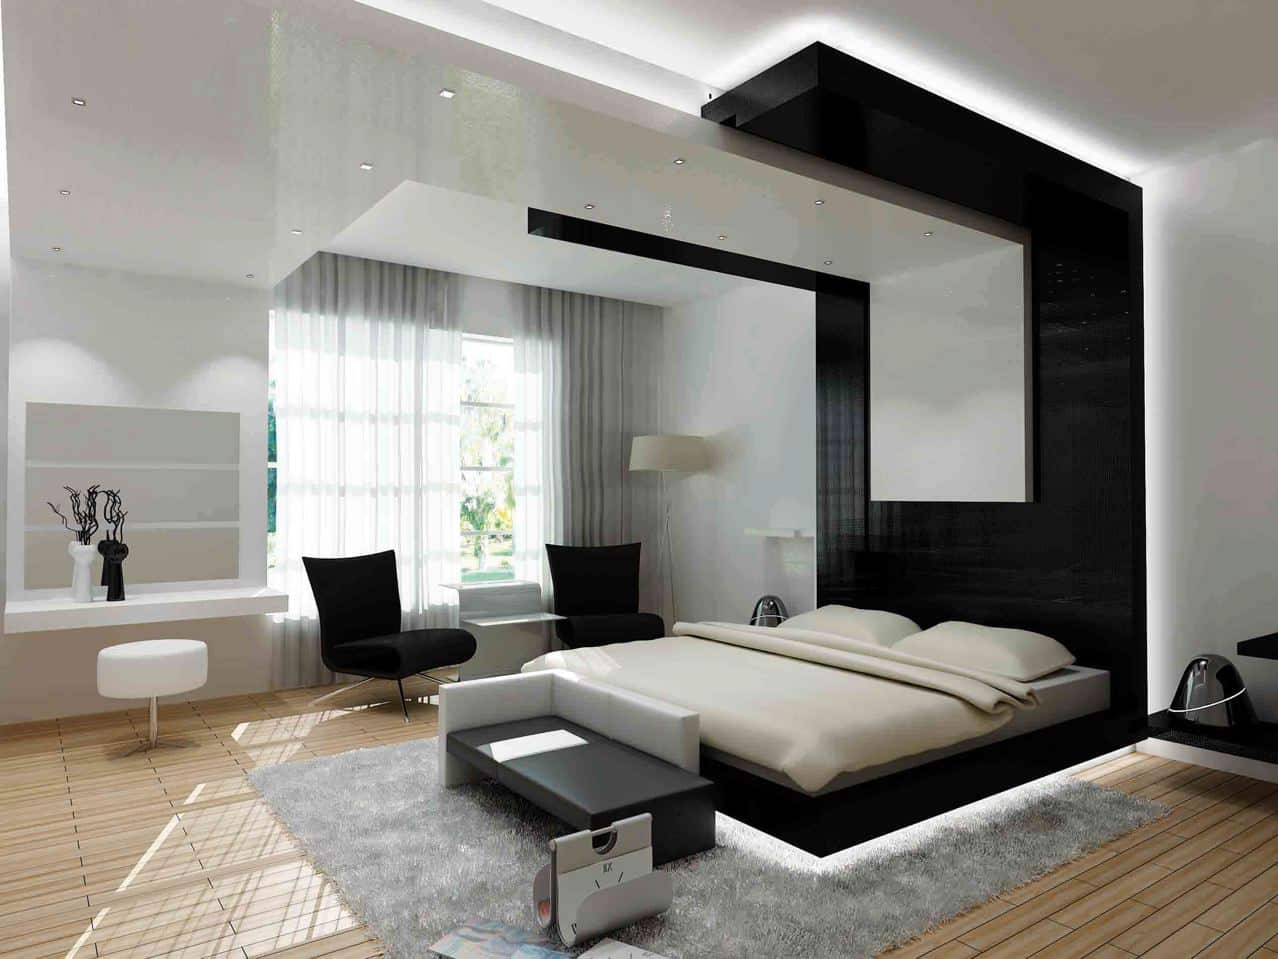 15 Inspiring Design Ideas: 25 Inspirational Modern Bedroom Ideas -DesignBump